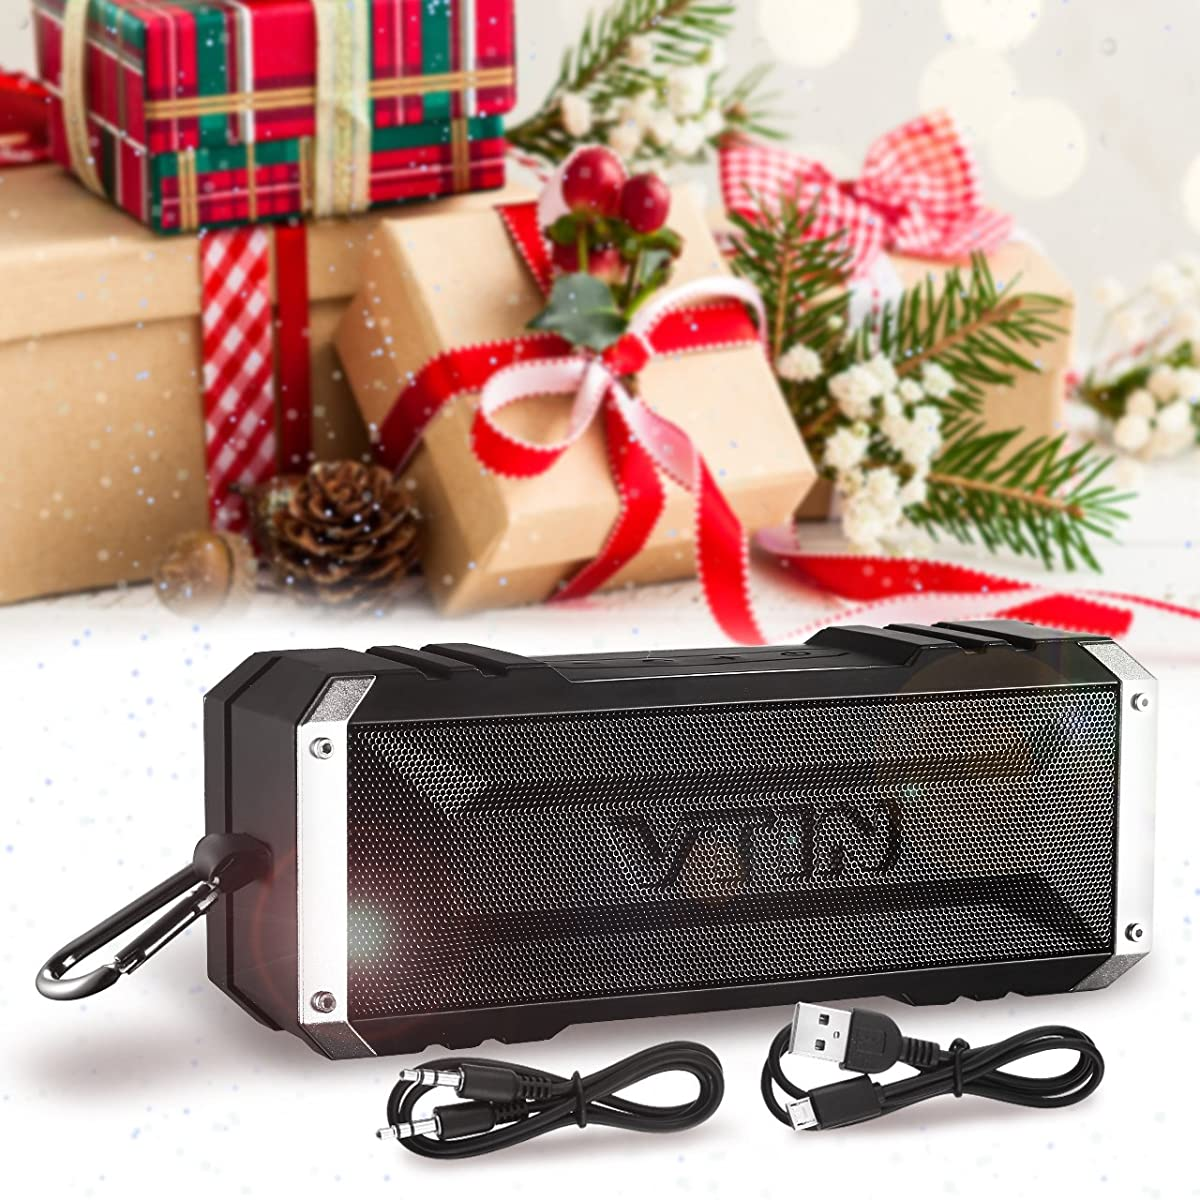 Vtin 20 Watt Waterproof Bluetooth Speaker, 25 Hours Playtime Portable Outdoor Bluetooth Speaker, Wireless Speaker for iPhone, Pool, Beach, Golf, Home